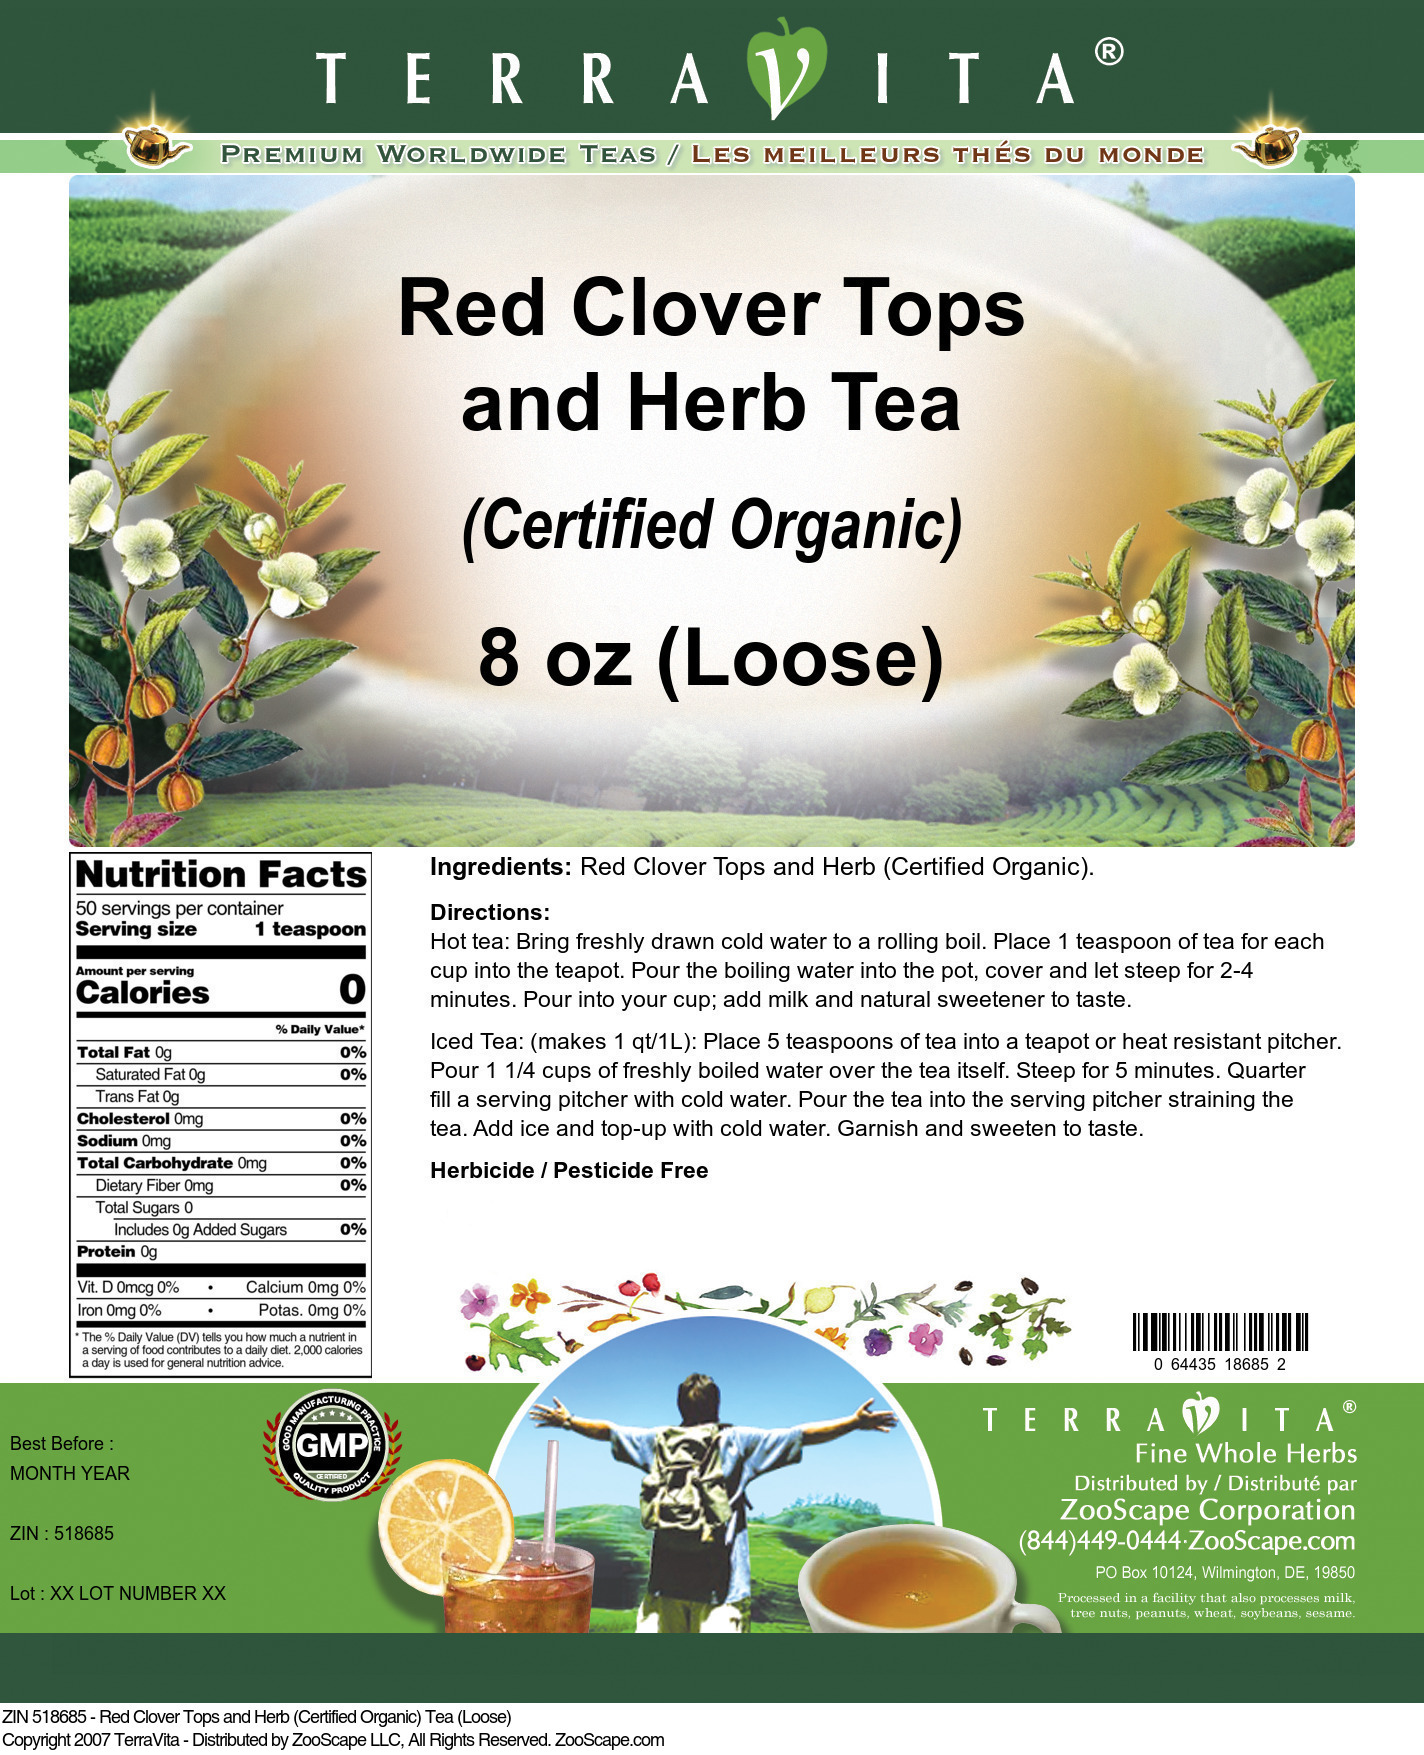 Red Clover Tops and Herb